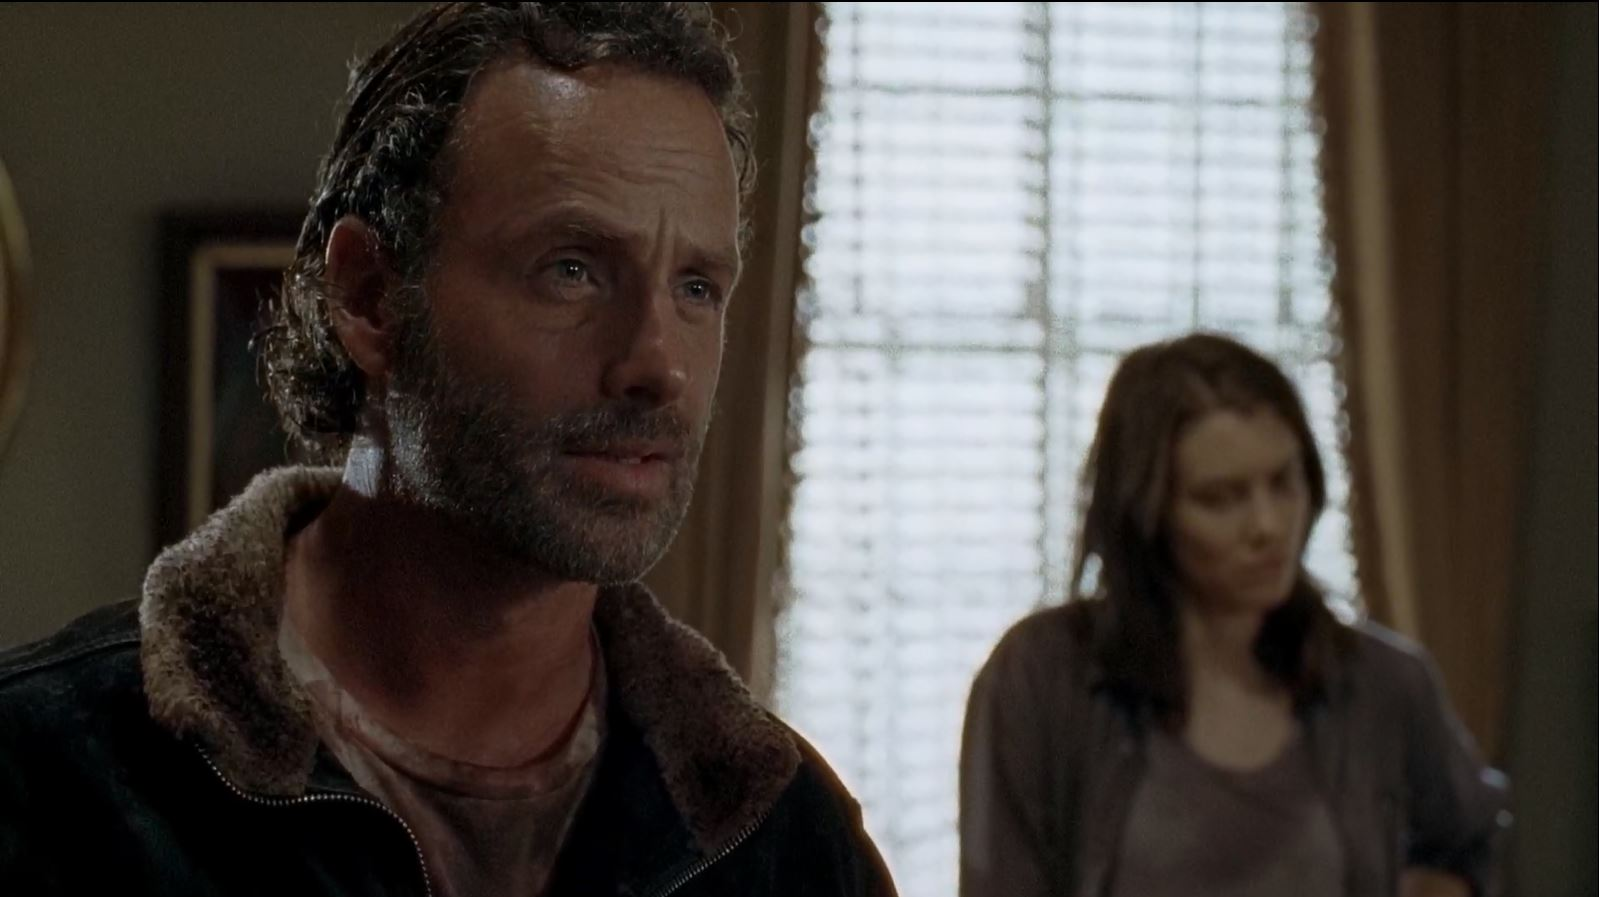 Rick Grimes. The Walking Dead S6Ep11 Knots Untie - a short opinion